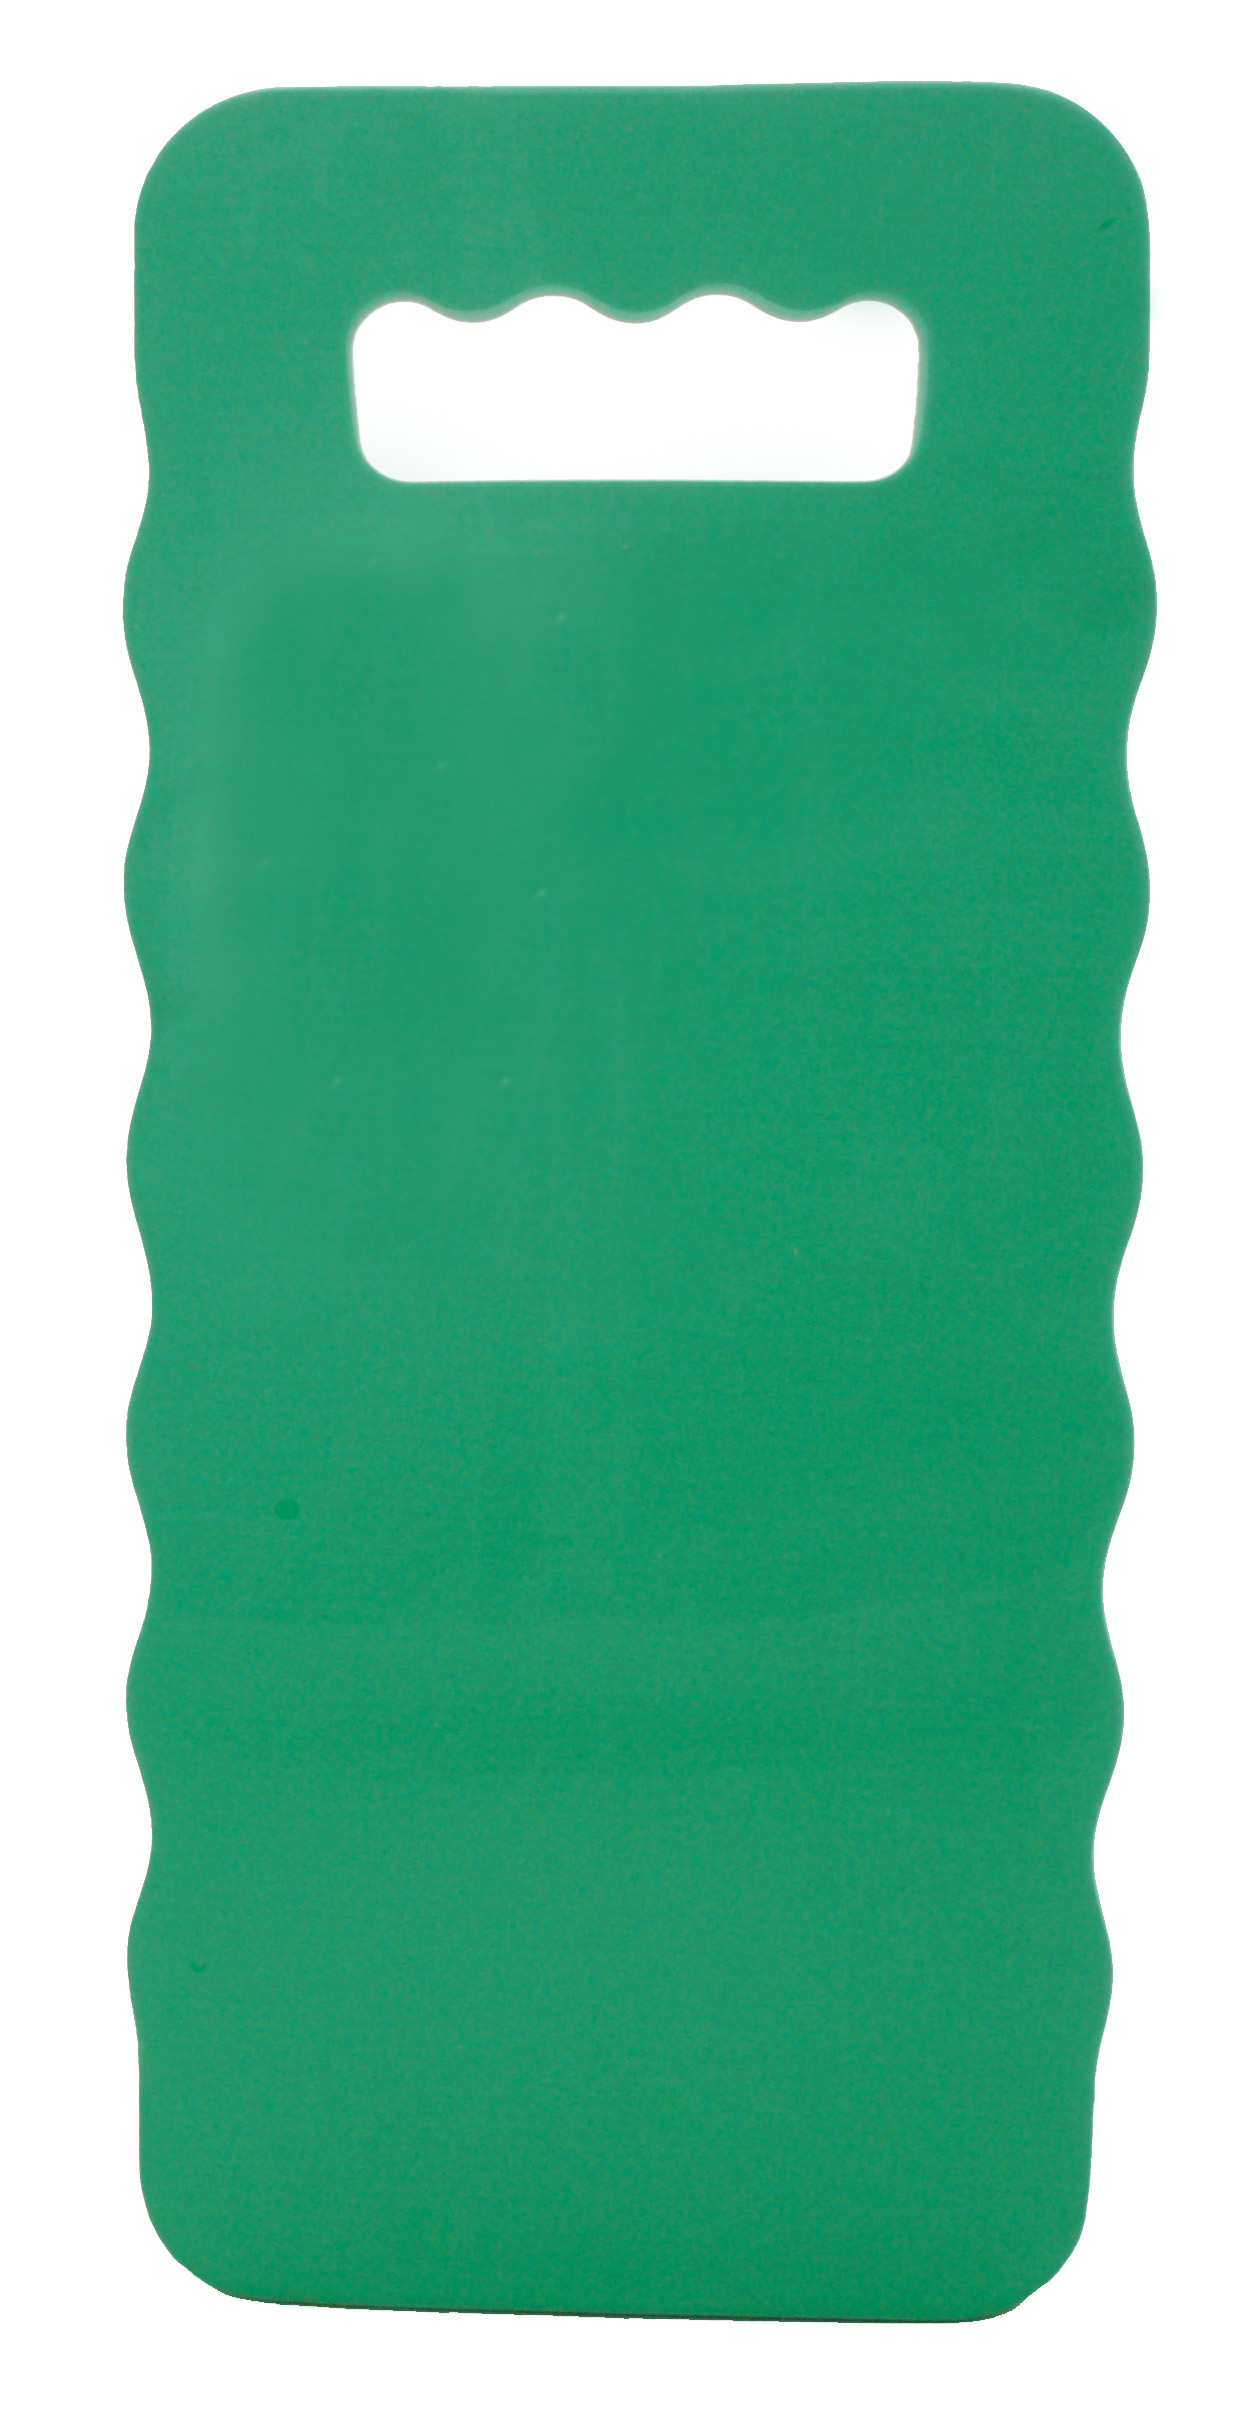 Garden Kneeling Pad GS405 Foam Kneeling Pad for Gardeners, 16-Inch by 7-Inch